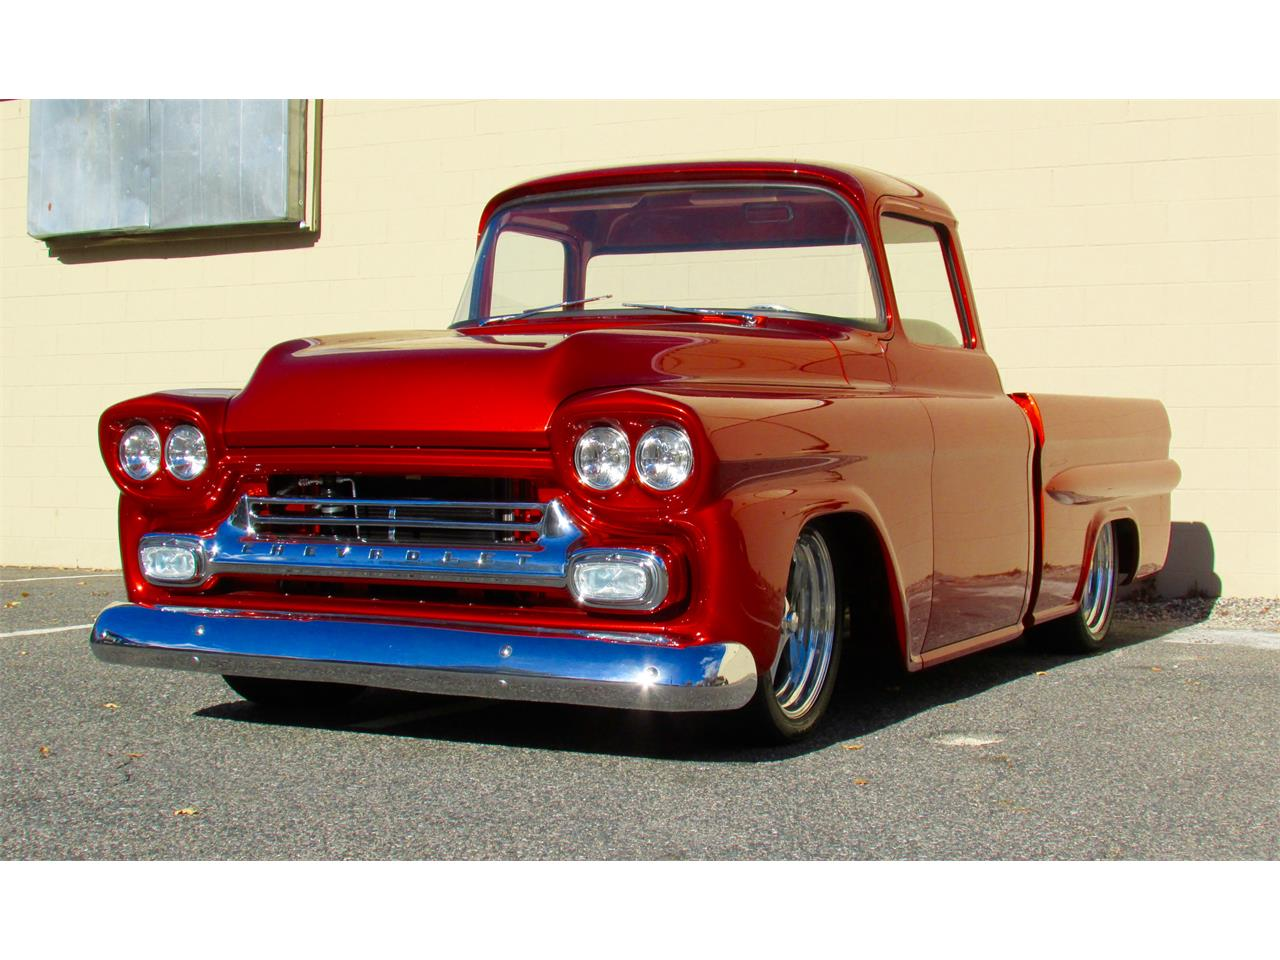 Large Picture of Classic 1959 Chevrolet Fleetside Custom Pickup Truck  located in Massachusetts Offered by a Private Seller - JPTV